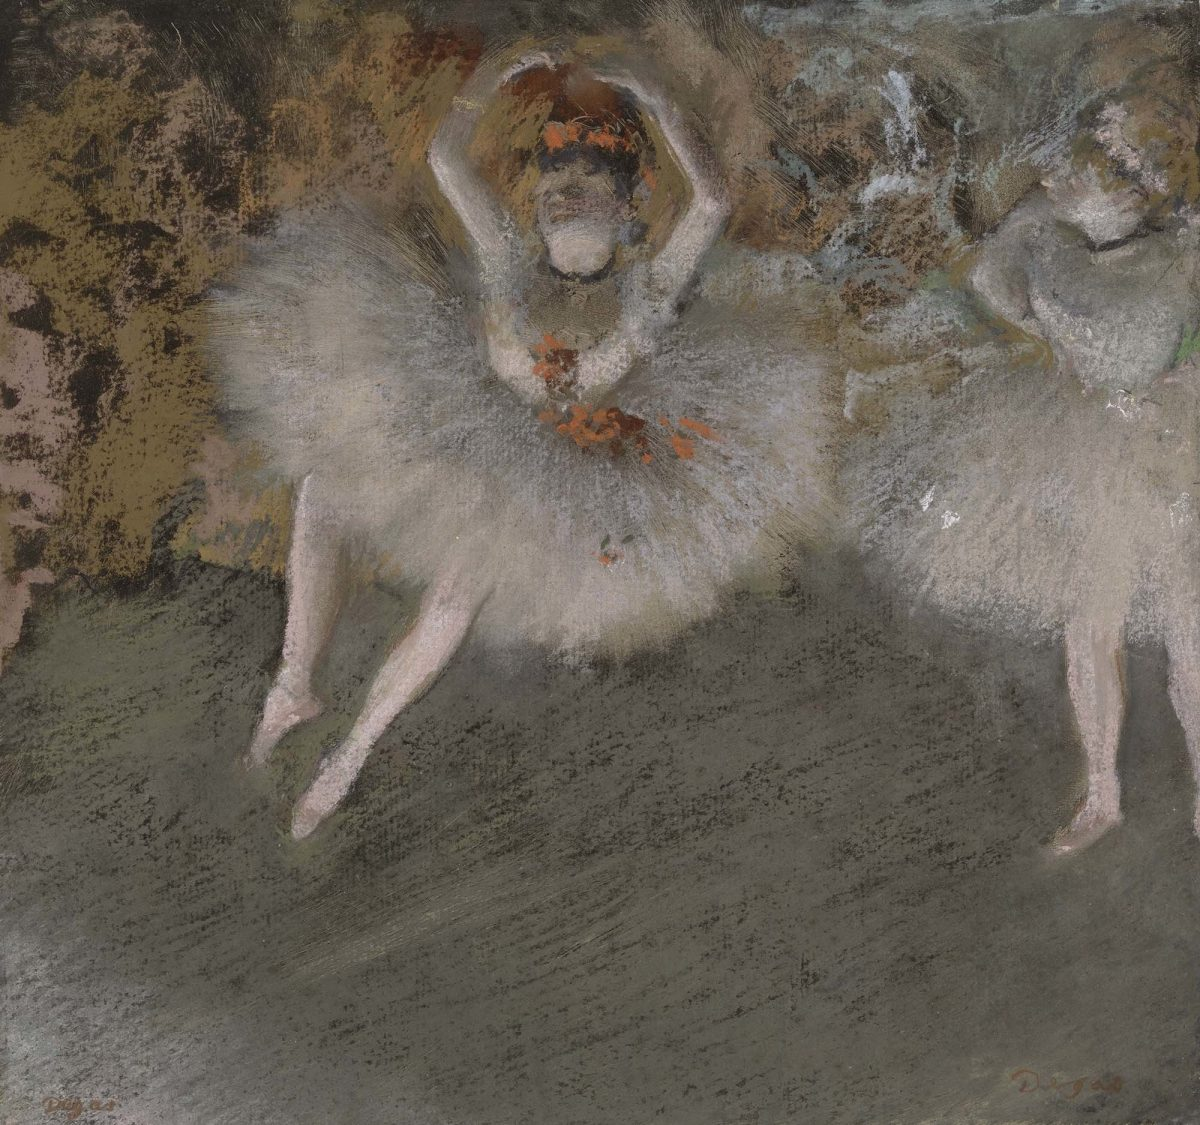 Hilaire-Germain-Edgar Degas. Pas battu. 1879